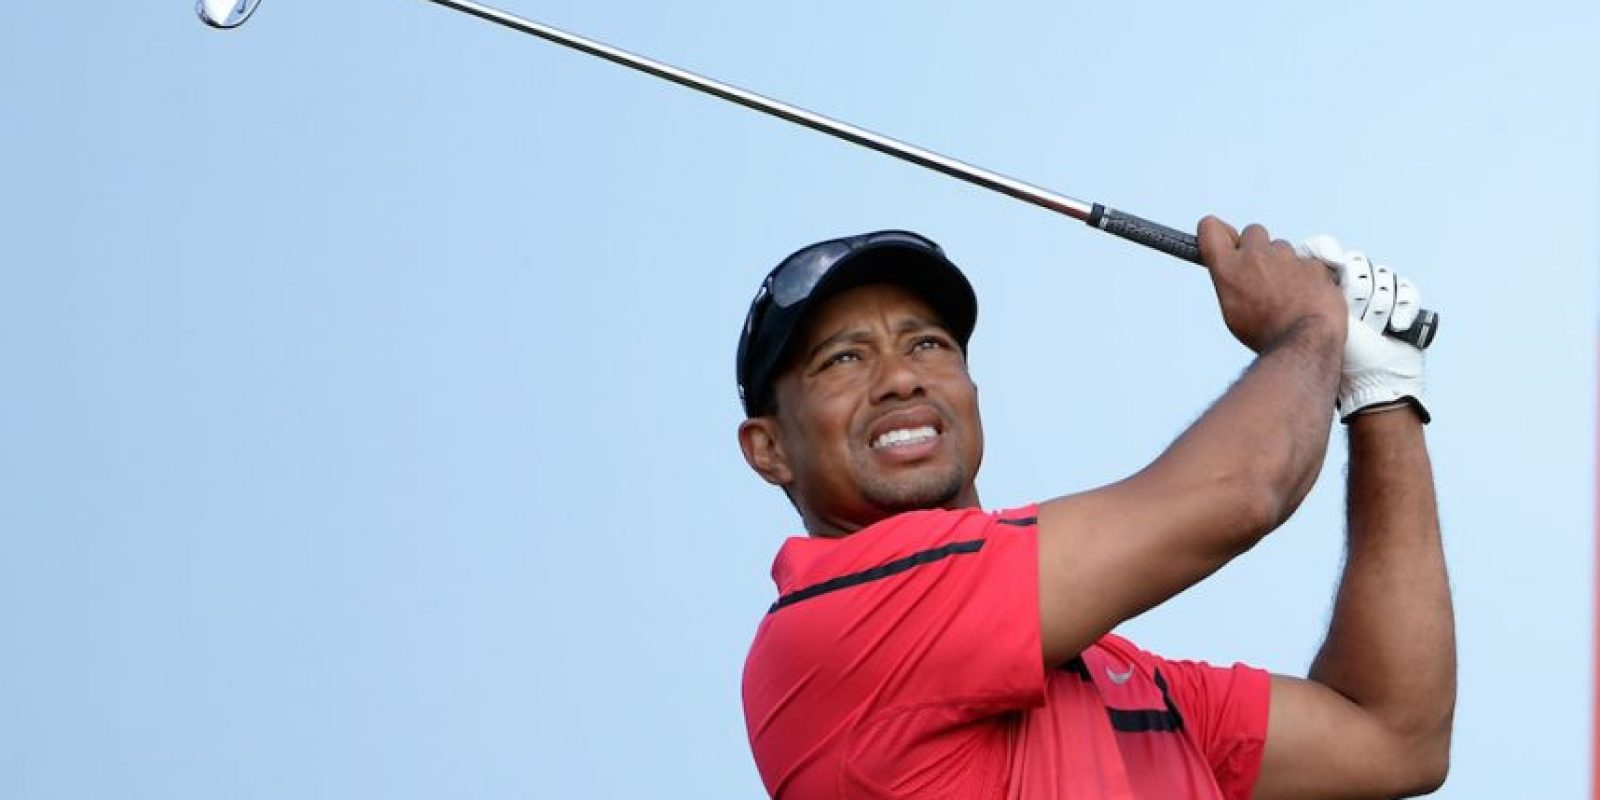 Tiger Woods, golfista estadounidense. Foto: Getty Images